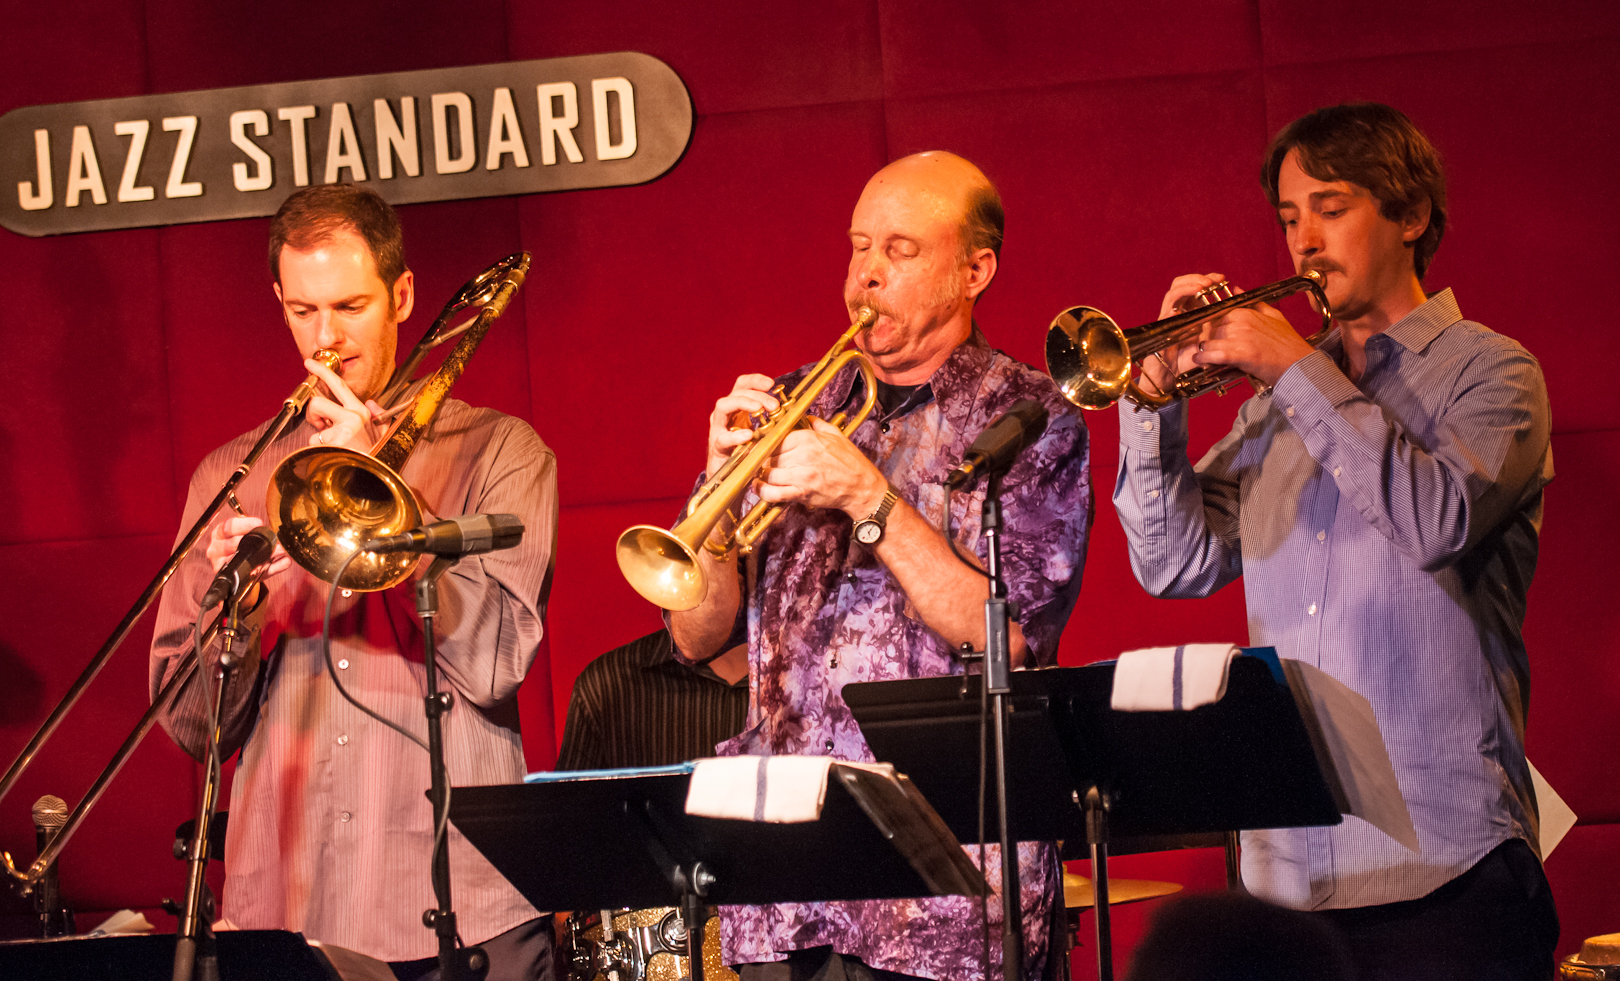 Joel Yennior, Tom Halter and Dan Rosenthal with the Either/Orchestra at the Jazz Standard